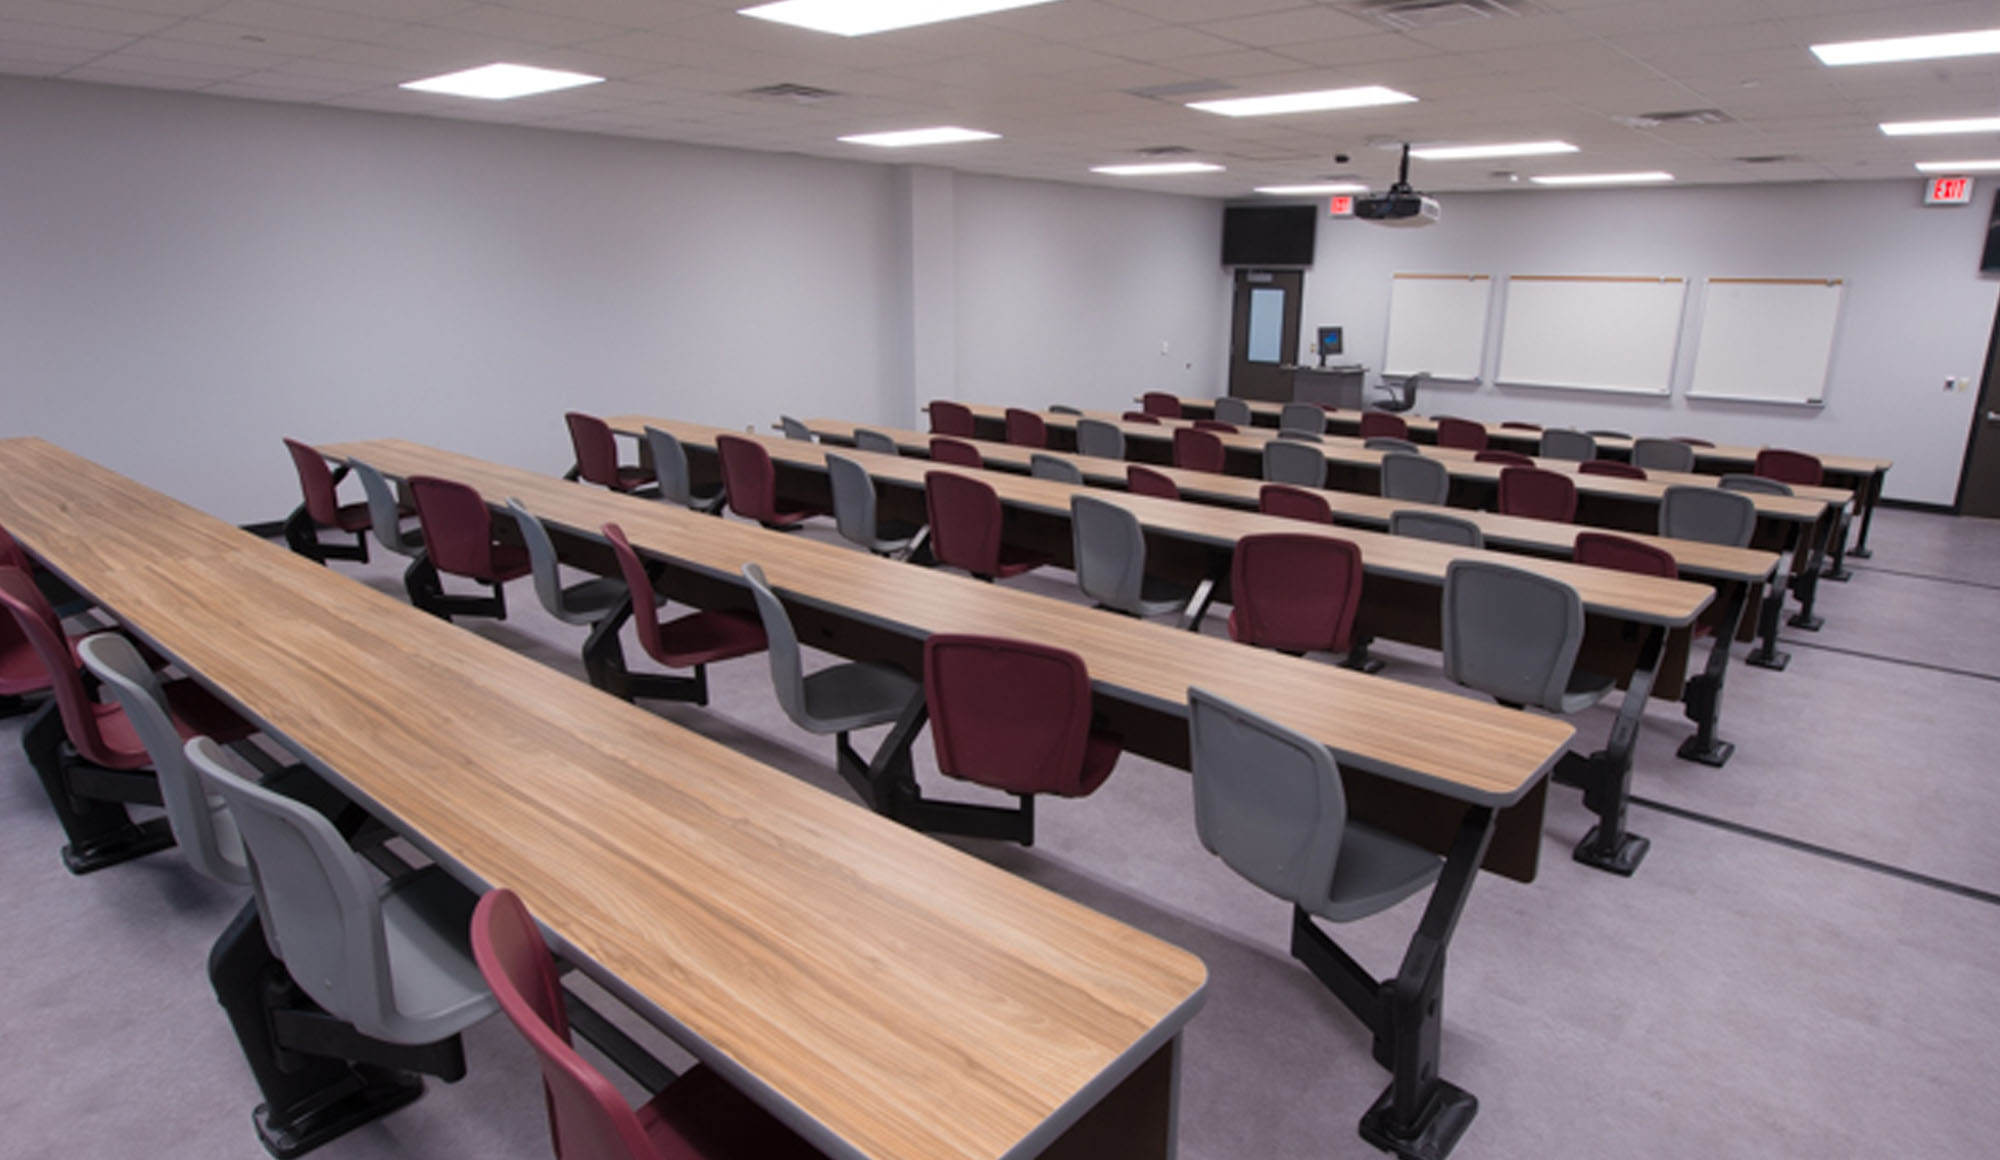 STEM Building Class Room Interior